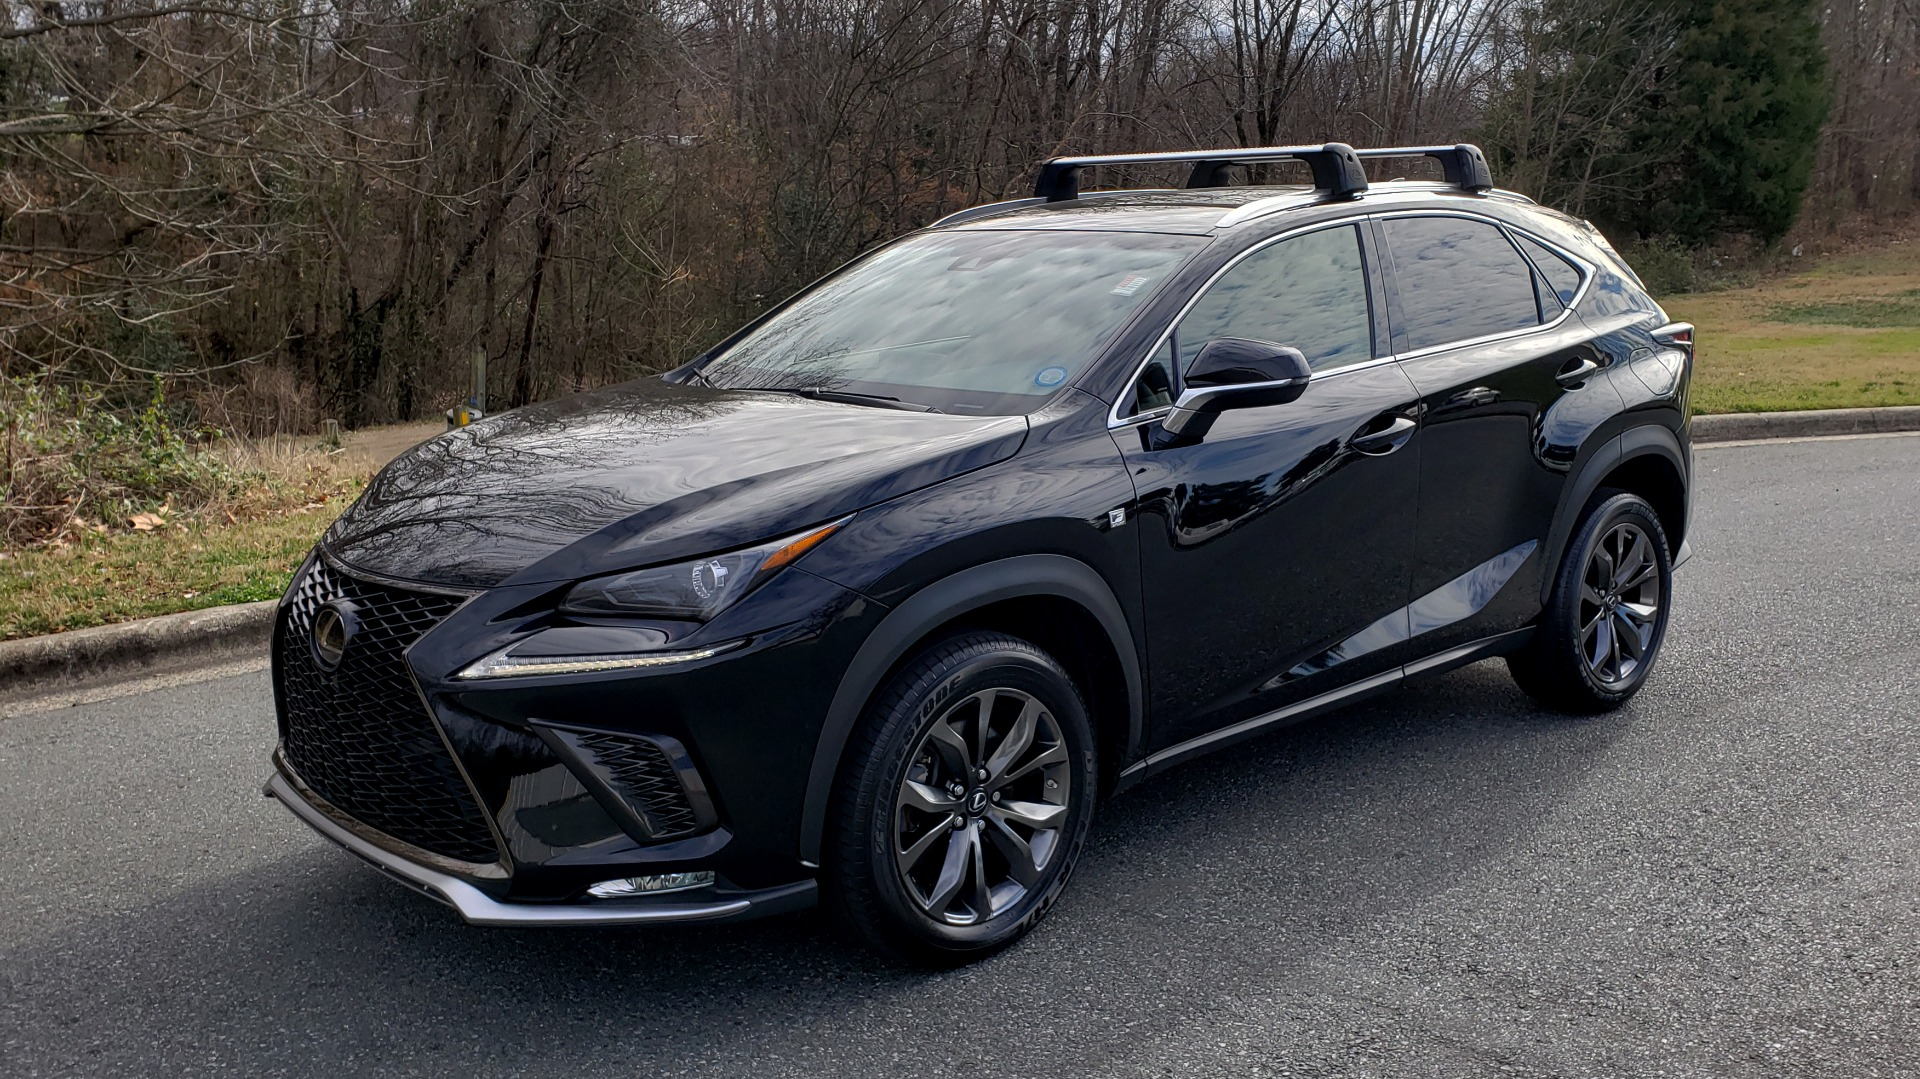 Used 2018 Lexus NX 300 F-SPORT / LEATHER / ACCY PKG / 18IN WHEELS for sale Sold at Formula Imports in Charlotte NC 28227 1